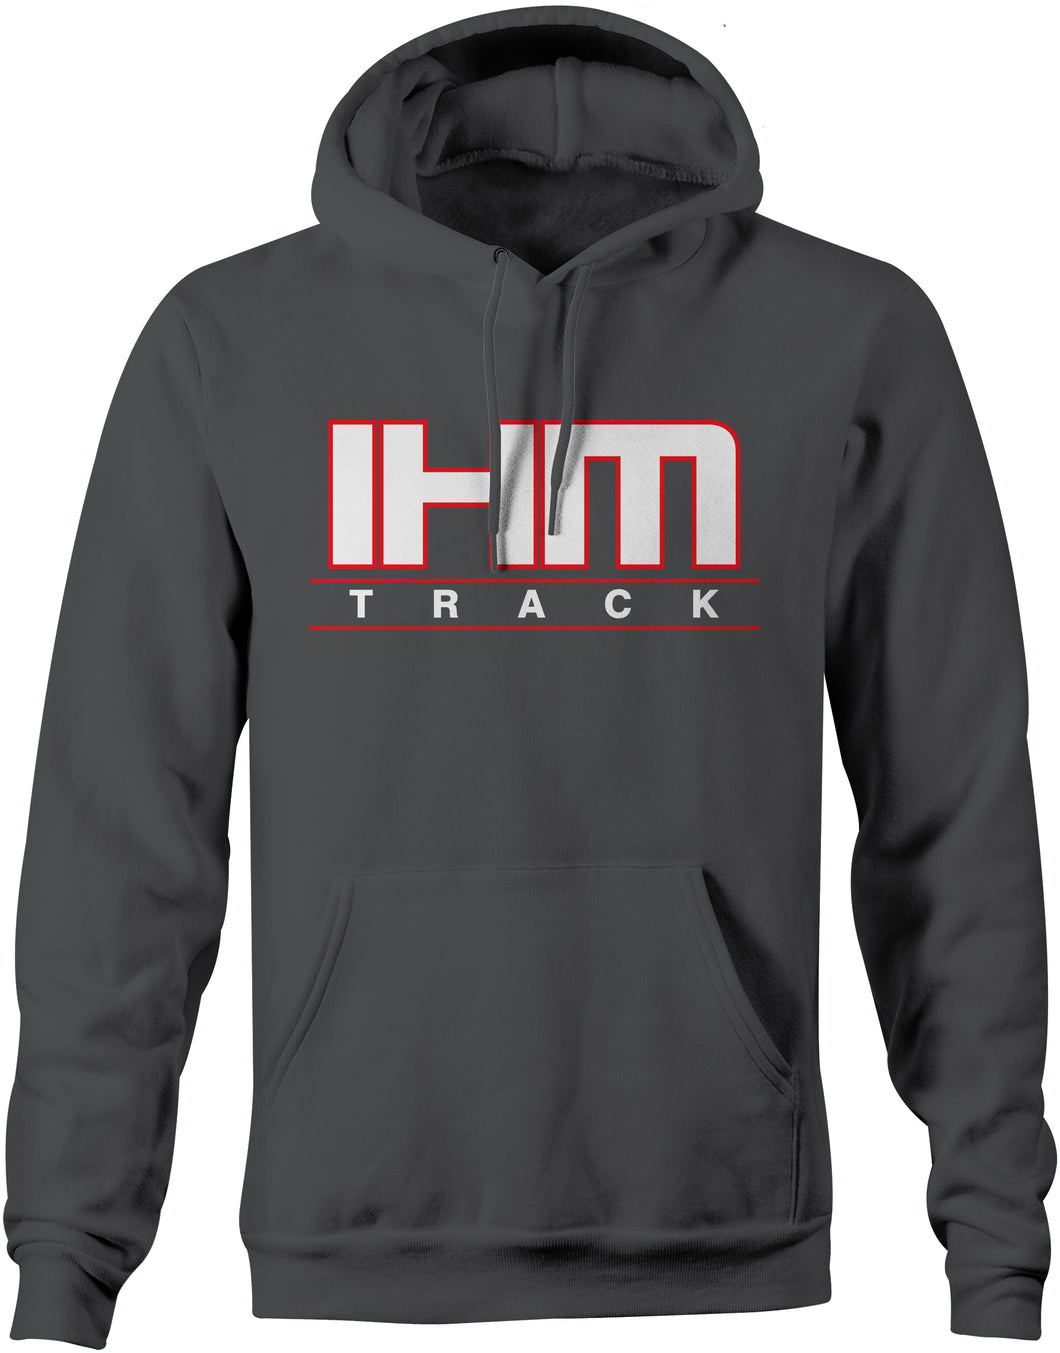 Graphite Track Performance Hoodie